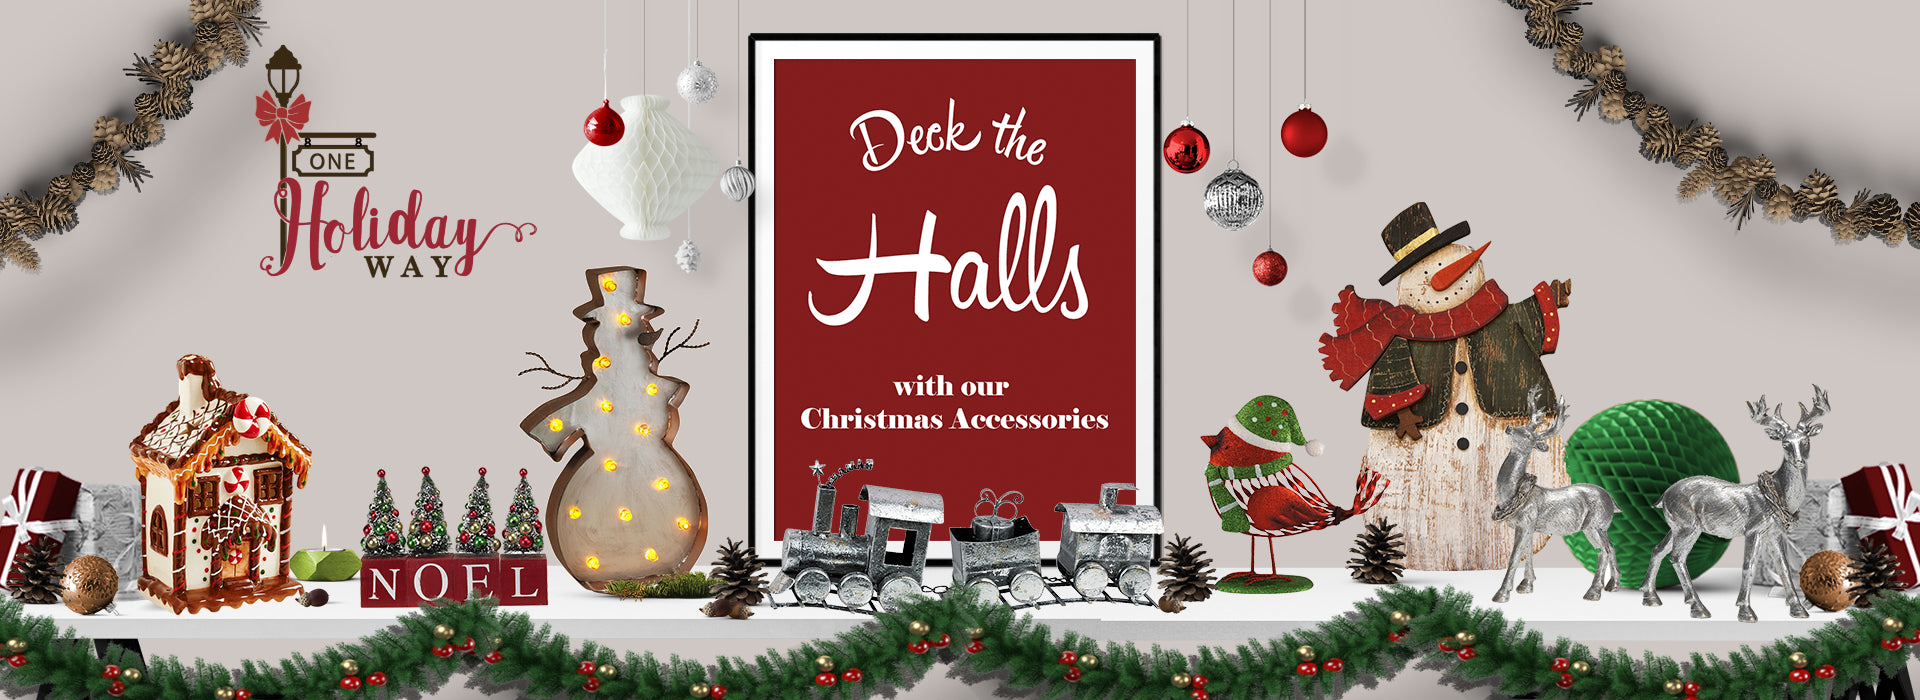 snap decor la best your image pack decorations to home holiday the organizing story hm ways up